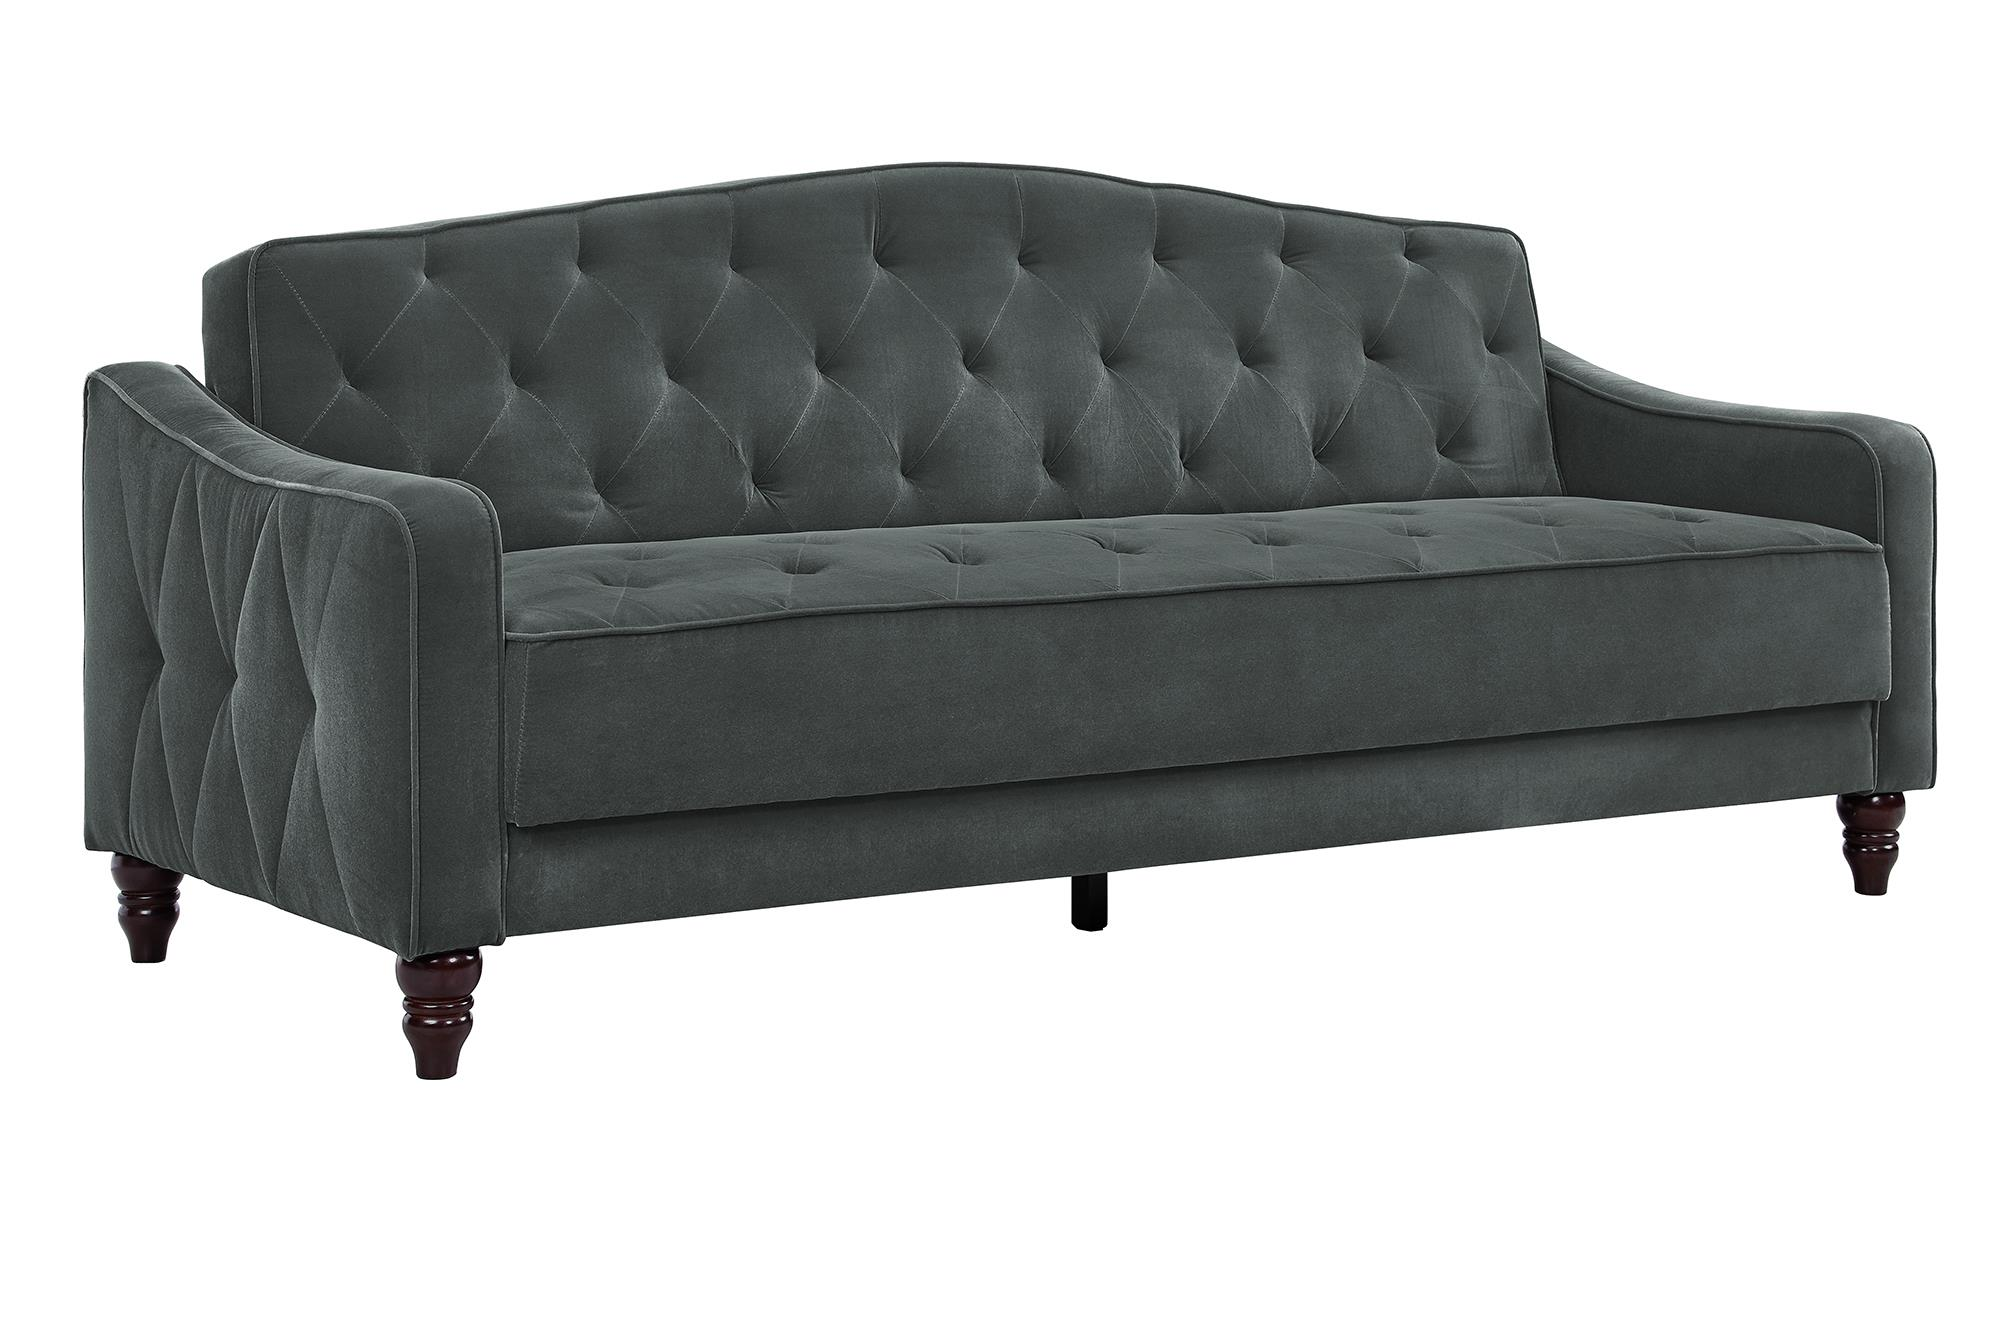 Novogratz Vintage Tufted Sofa Sleeper II, Multiple Colors   Walmart.com